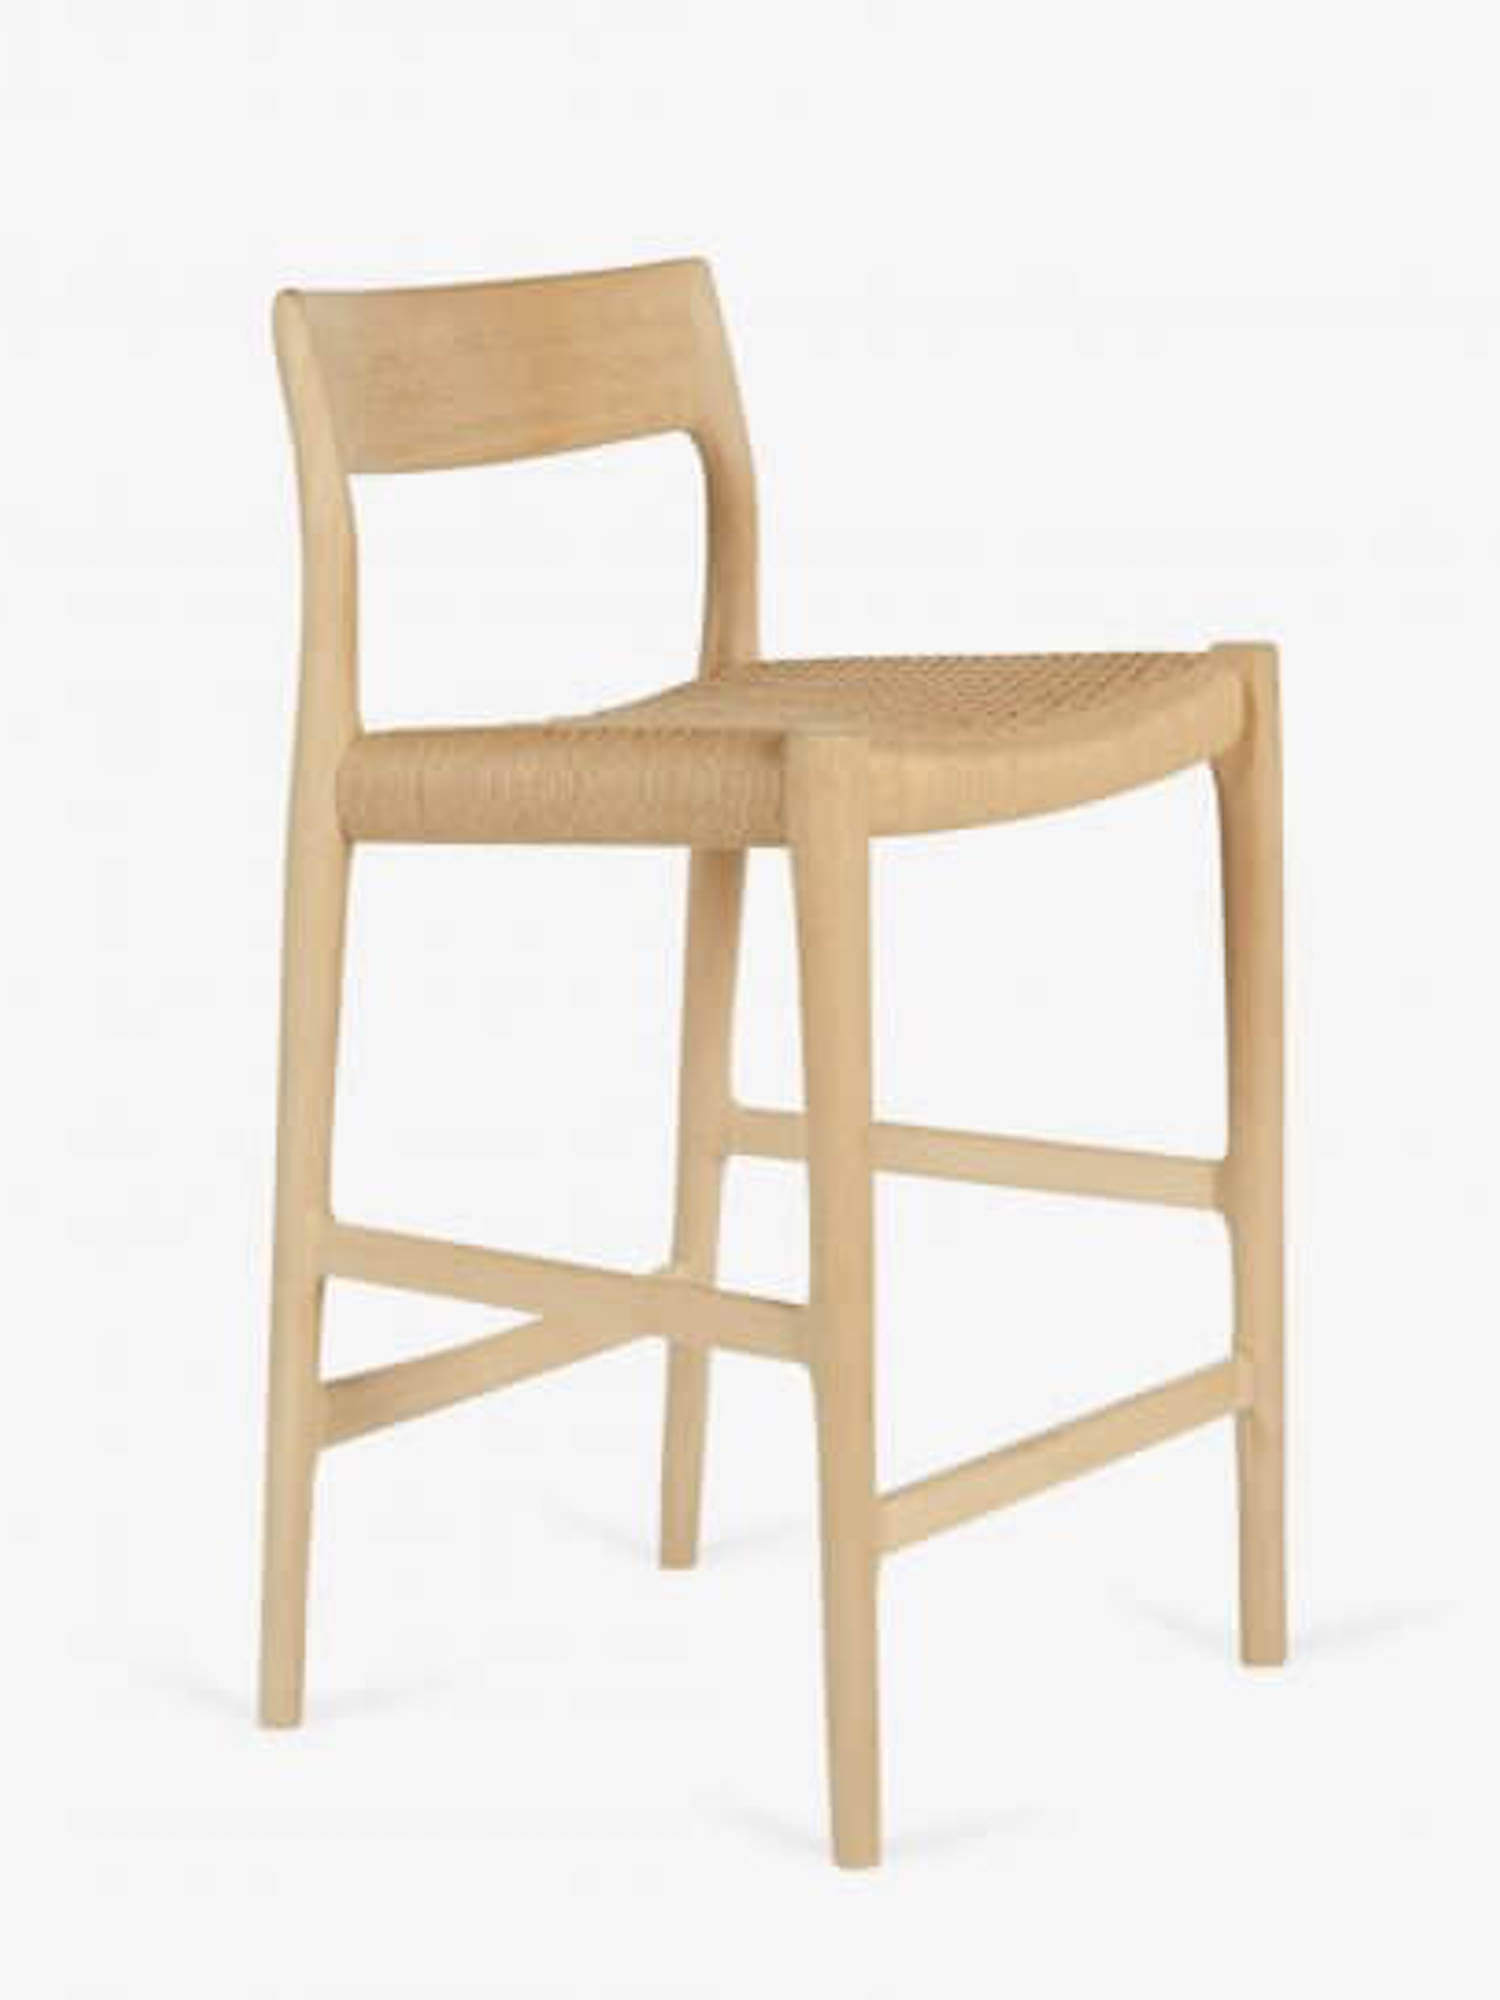 Est Living Design Directory Great Dane Moller 77 Stool4 750x540